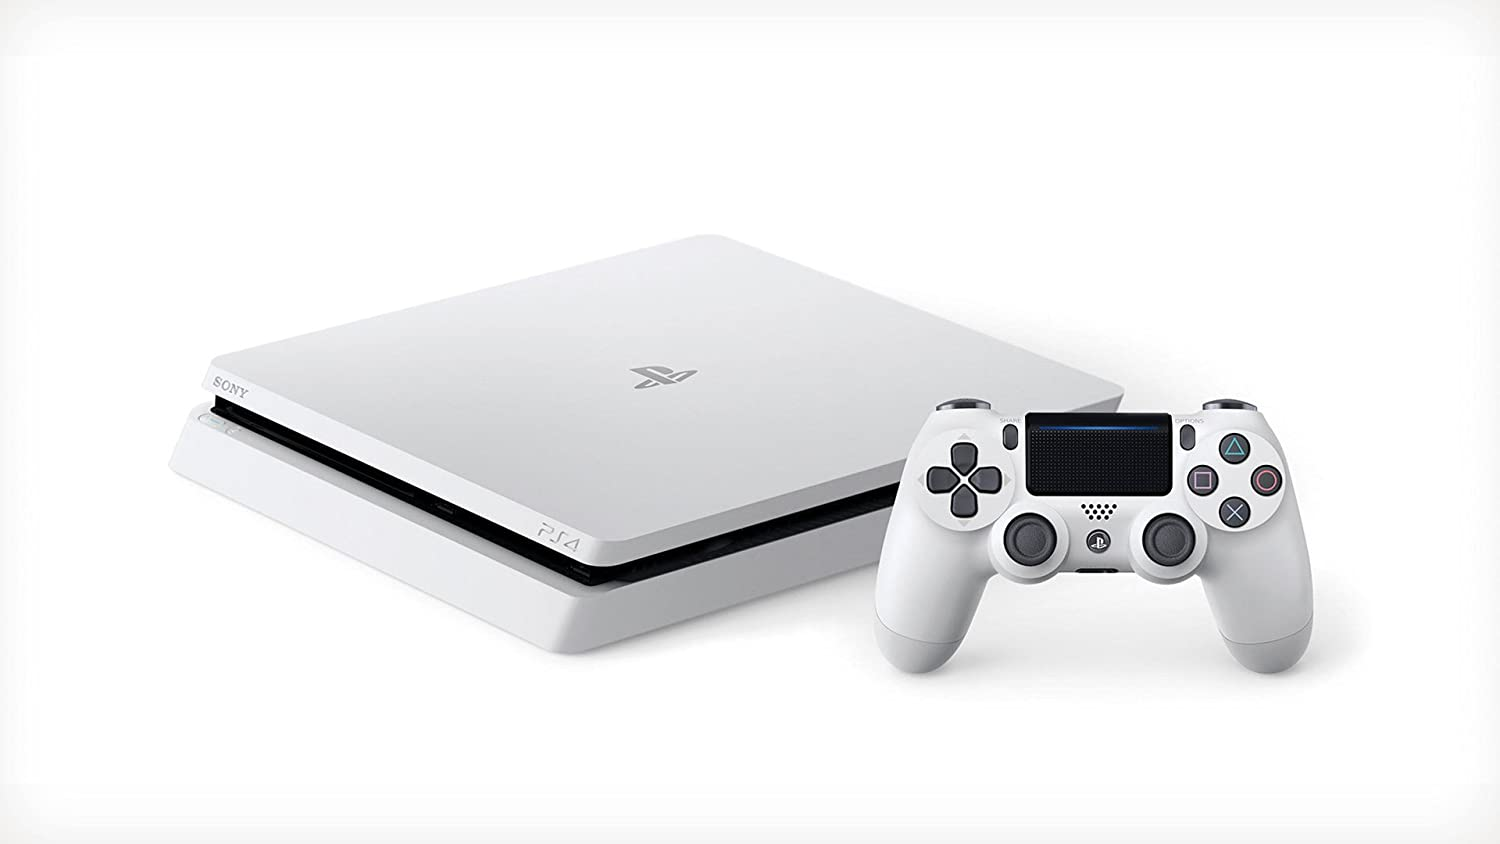 PlayStation 4 Slim (PS4) - Consola de 500 GB, Color Blanco: Amazon.es: Videojuegos